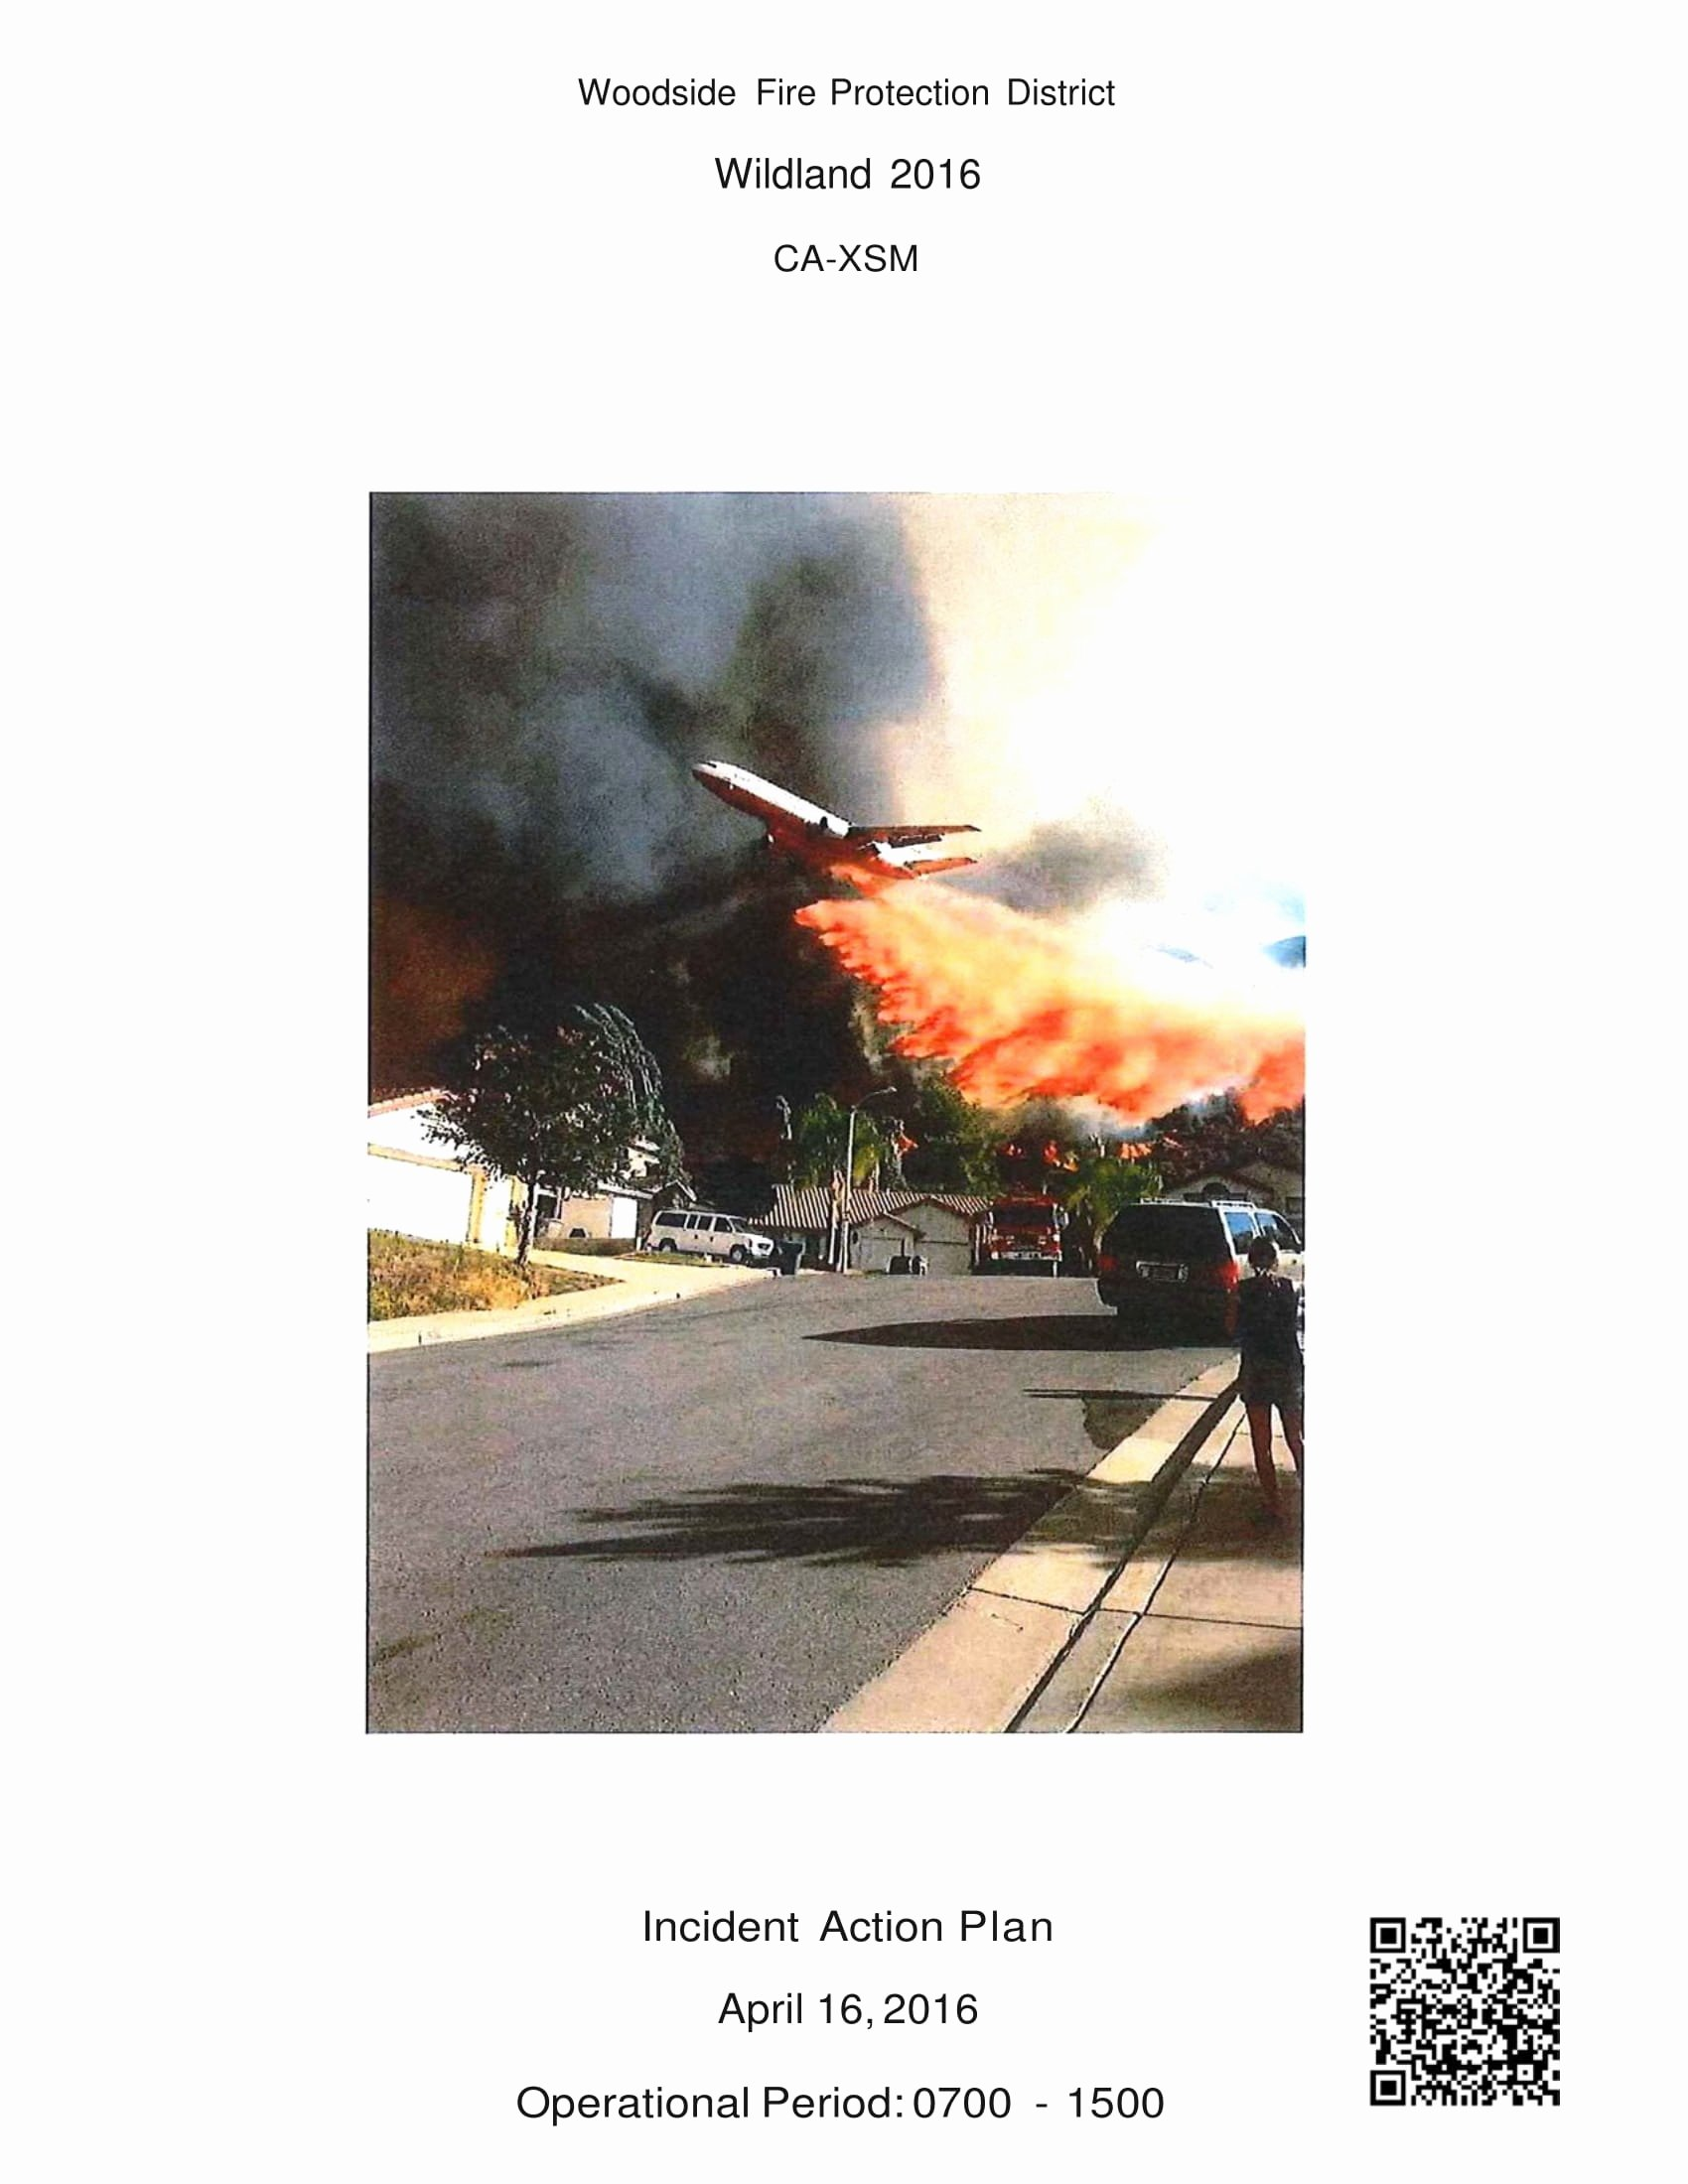 Incident Action Plan Example Unique 10 Incident Action Plan Templates Pdf Word